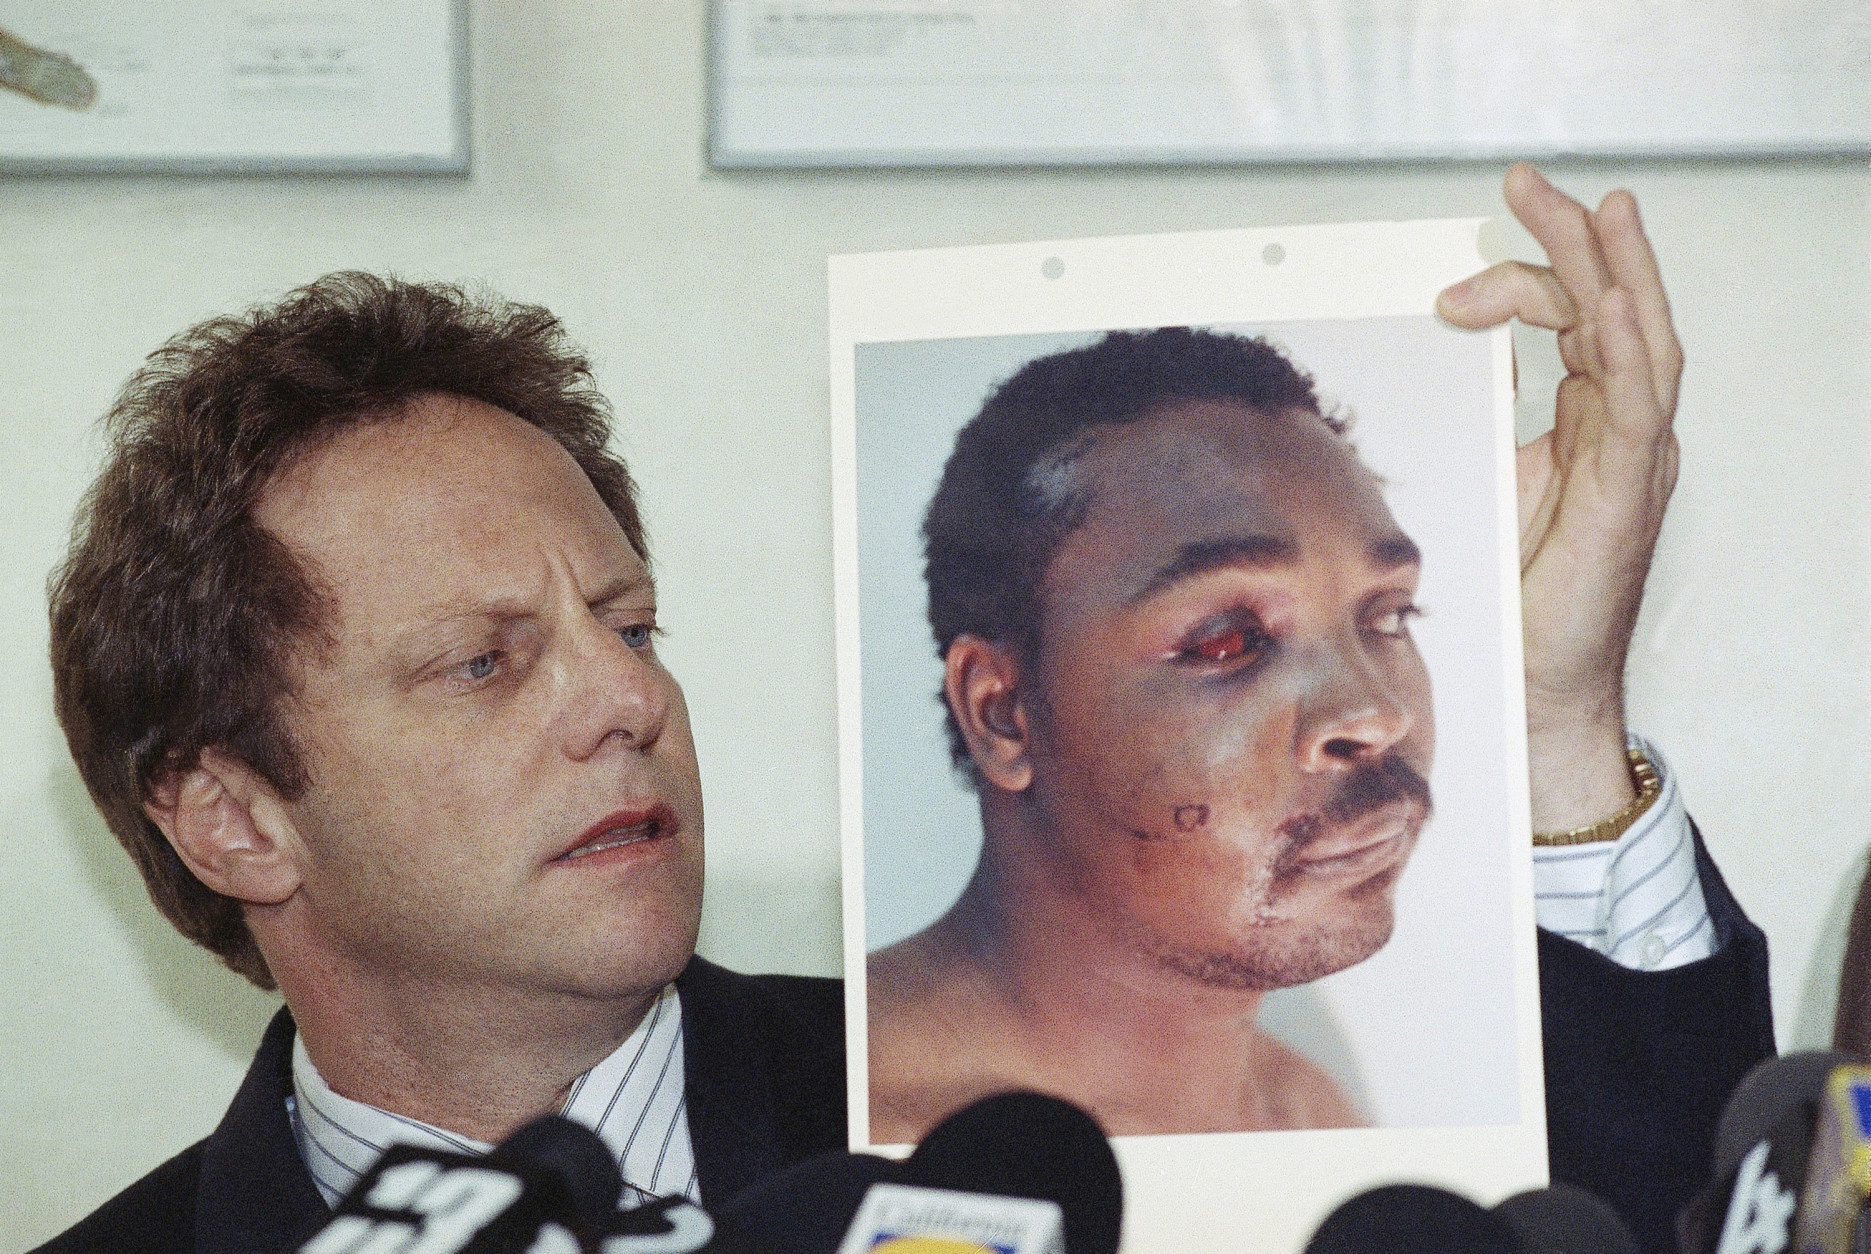 **WARNING: Graphic Content** Steven Lerman, attorney for Rodney King, displays a photo of his client during a press conference at his office in Beverly Hills, California, Friday, March 8, 1991. King's doctor outlined the extent of man's injuries for reporters during the meeting. (AP Photo/Nick Ut)